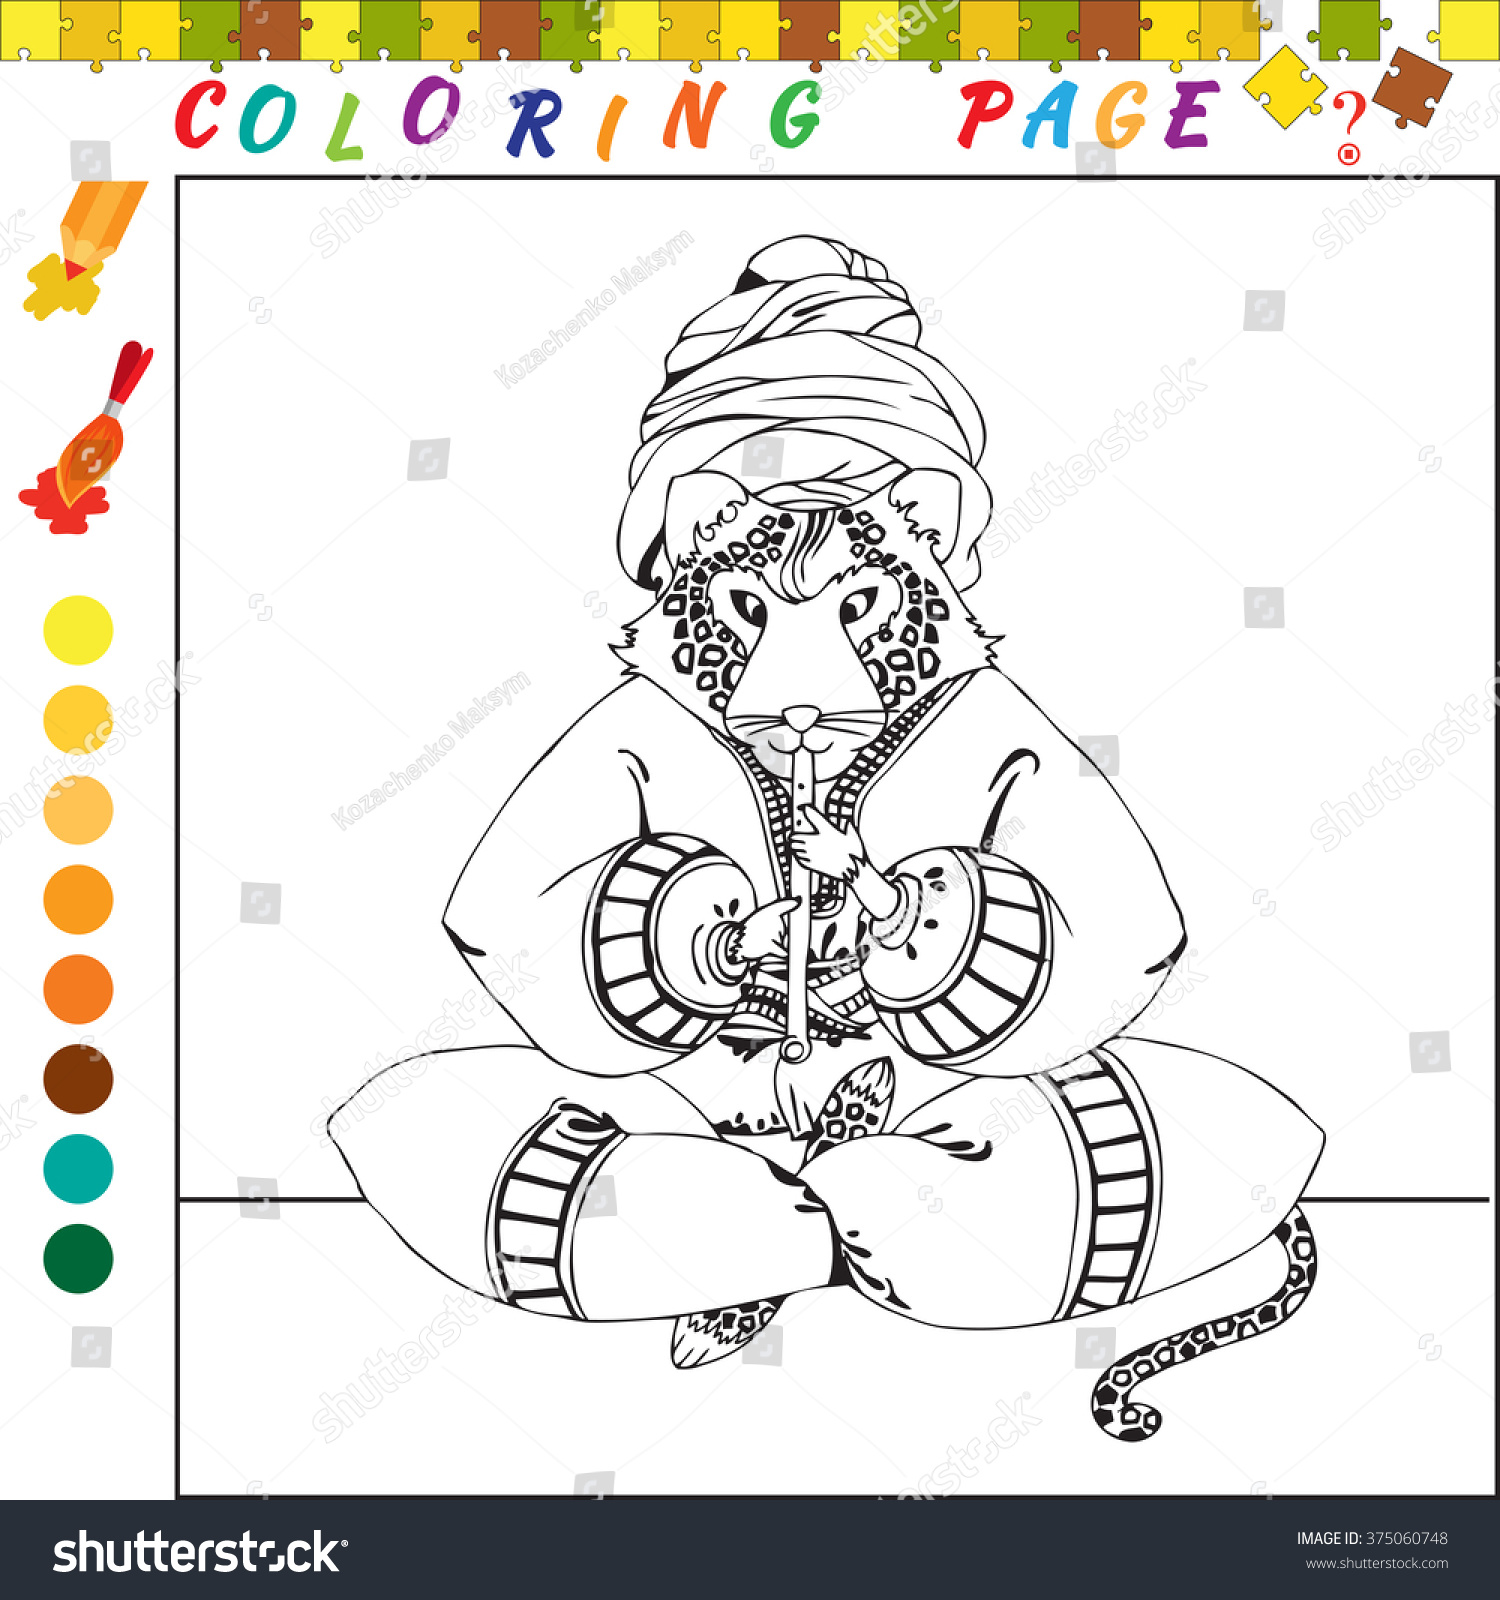 Co coloring books game - Co Coloring Books Game Coloring Book With Animal Theme Black And White Outline Illustration For